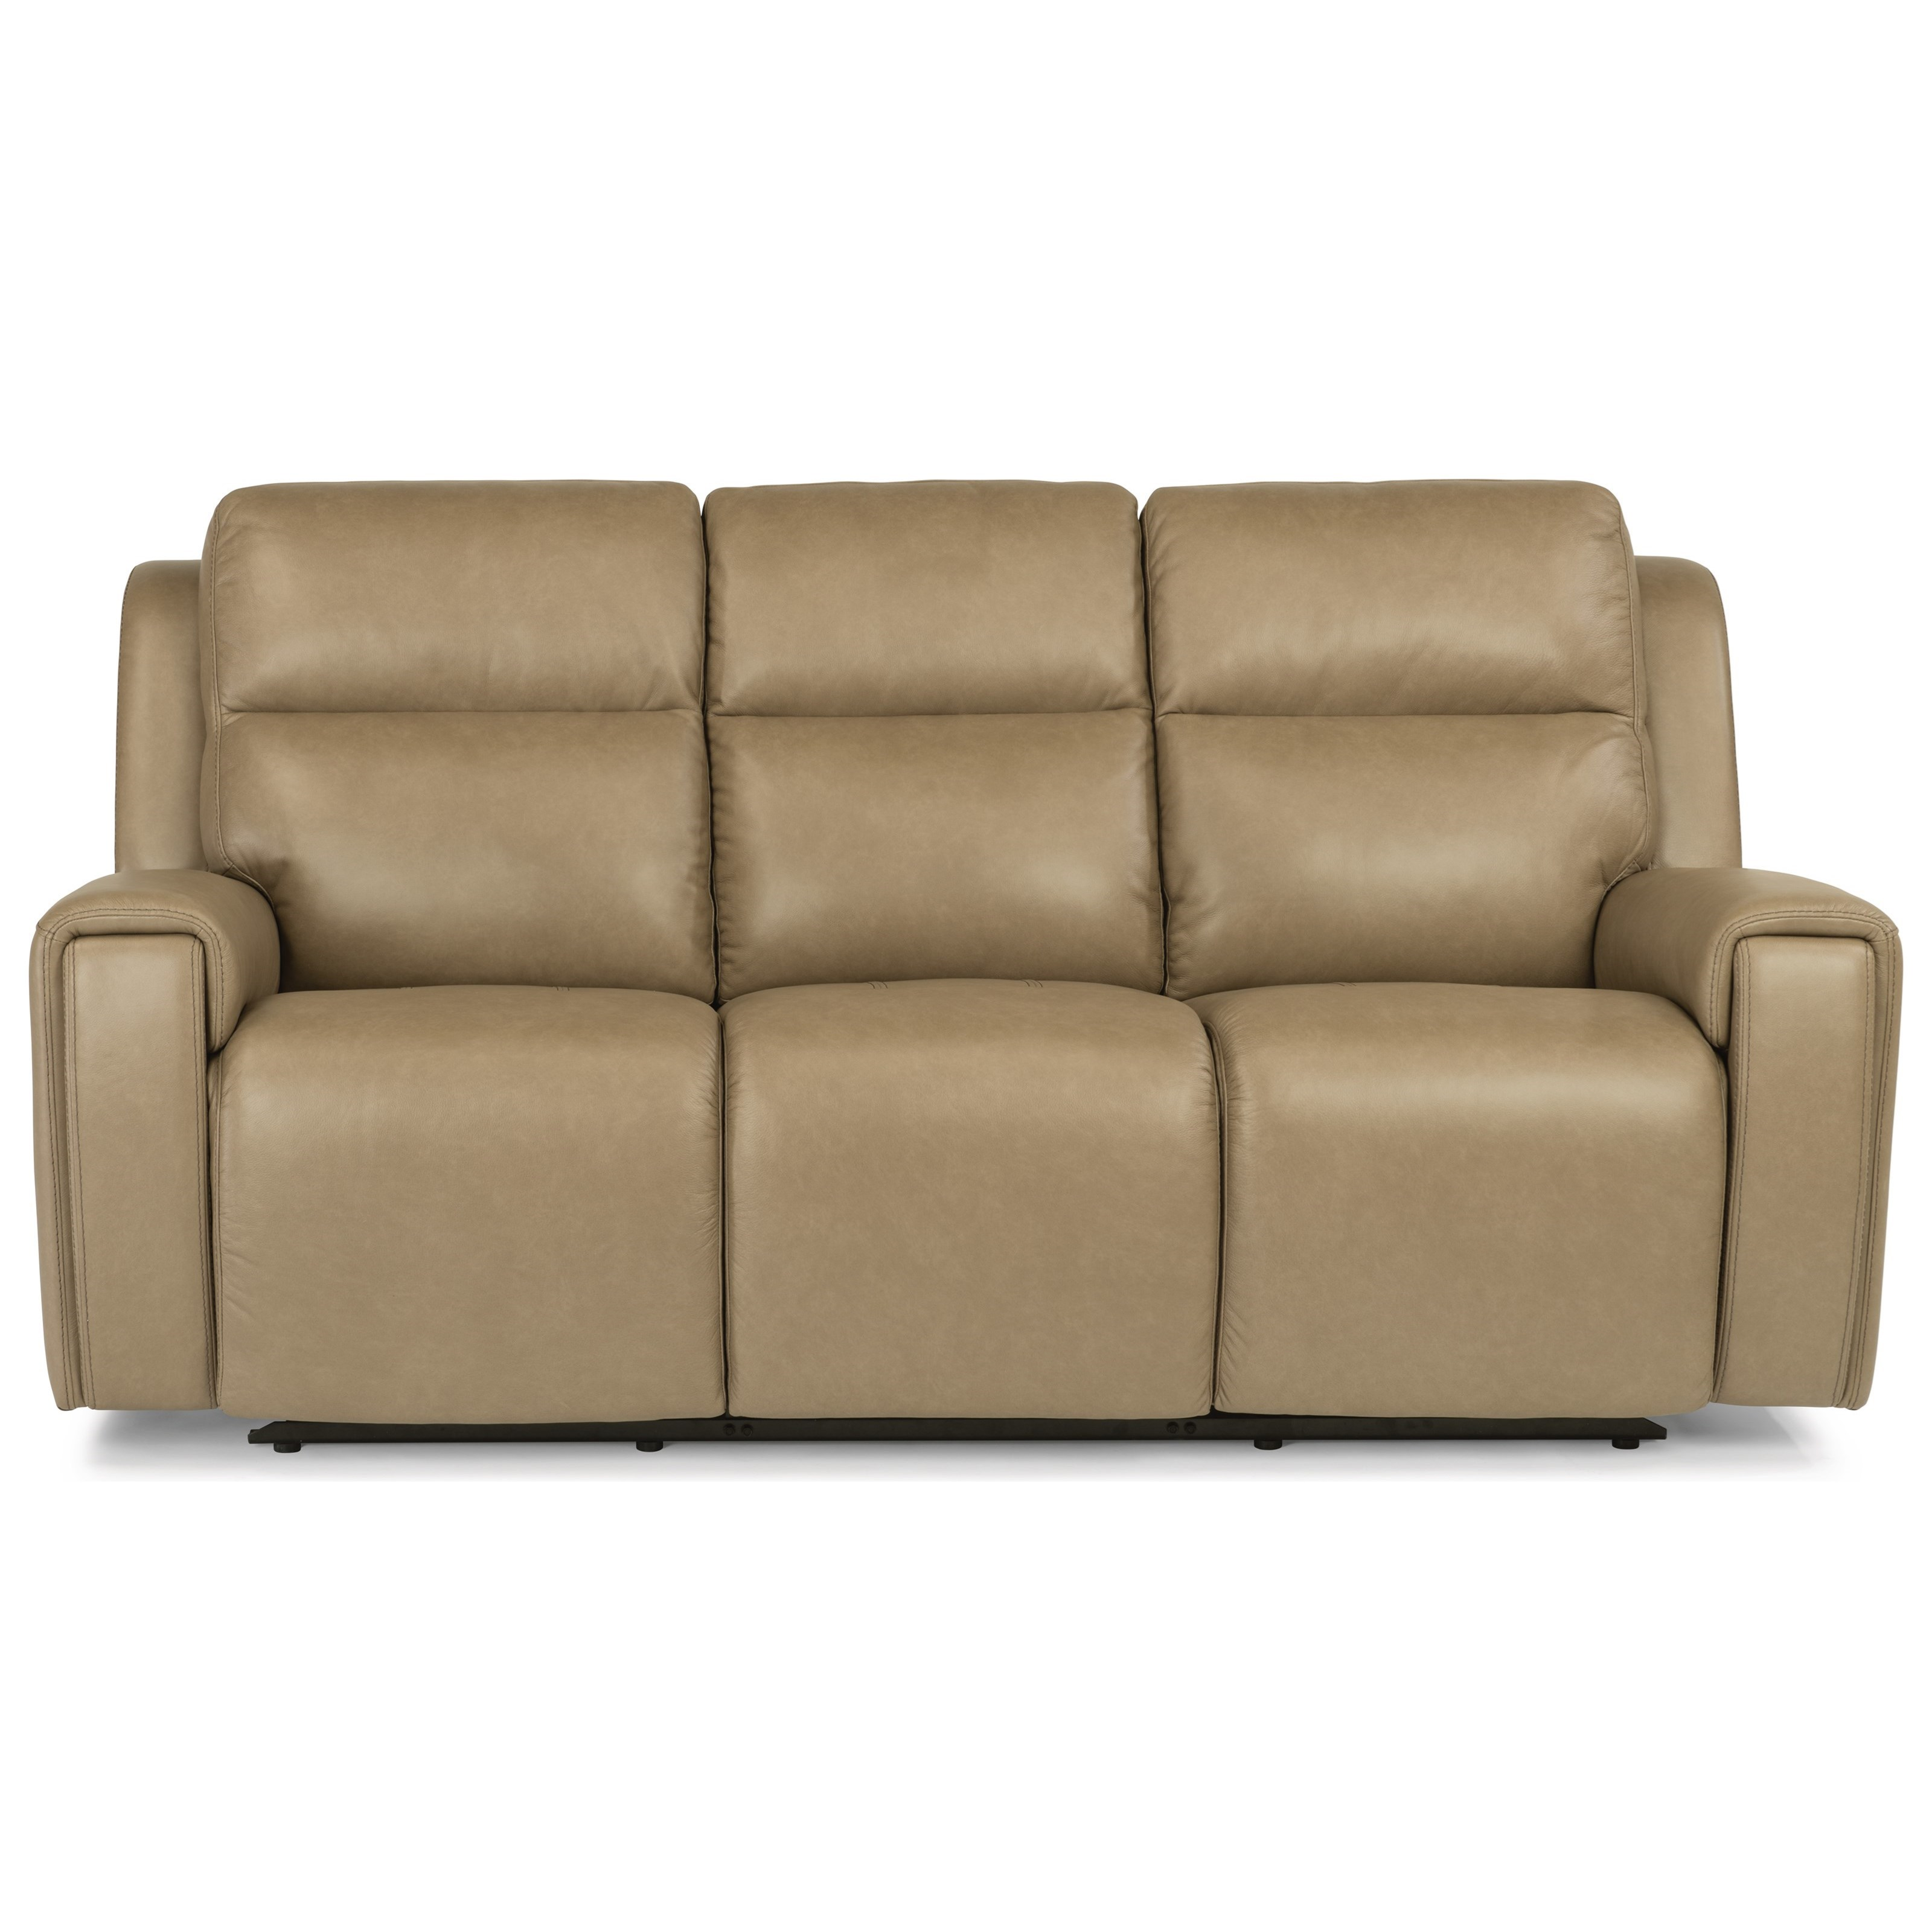 Swell Latitudes Jasper Contemporary Power Reclining Sofa With Power Headrest And Usb Port By Flexsteel At Olindes Furniture Lamtechconsult Wood Chair Design Ideas Lamtechconsultcom